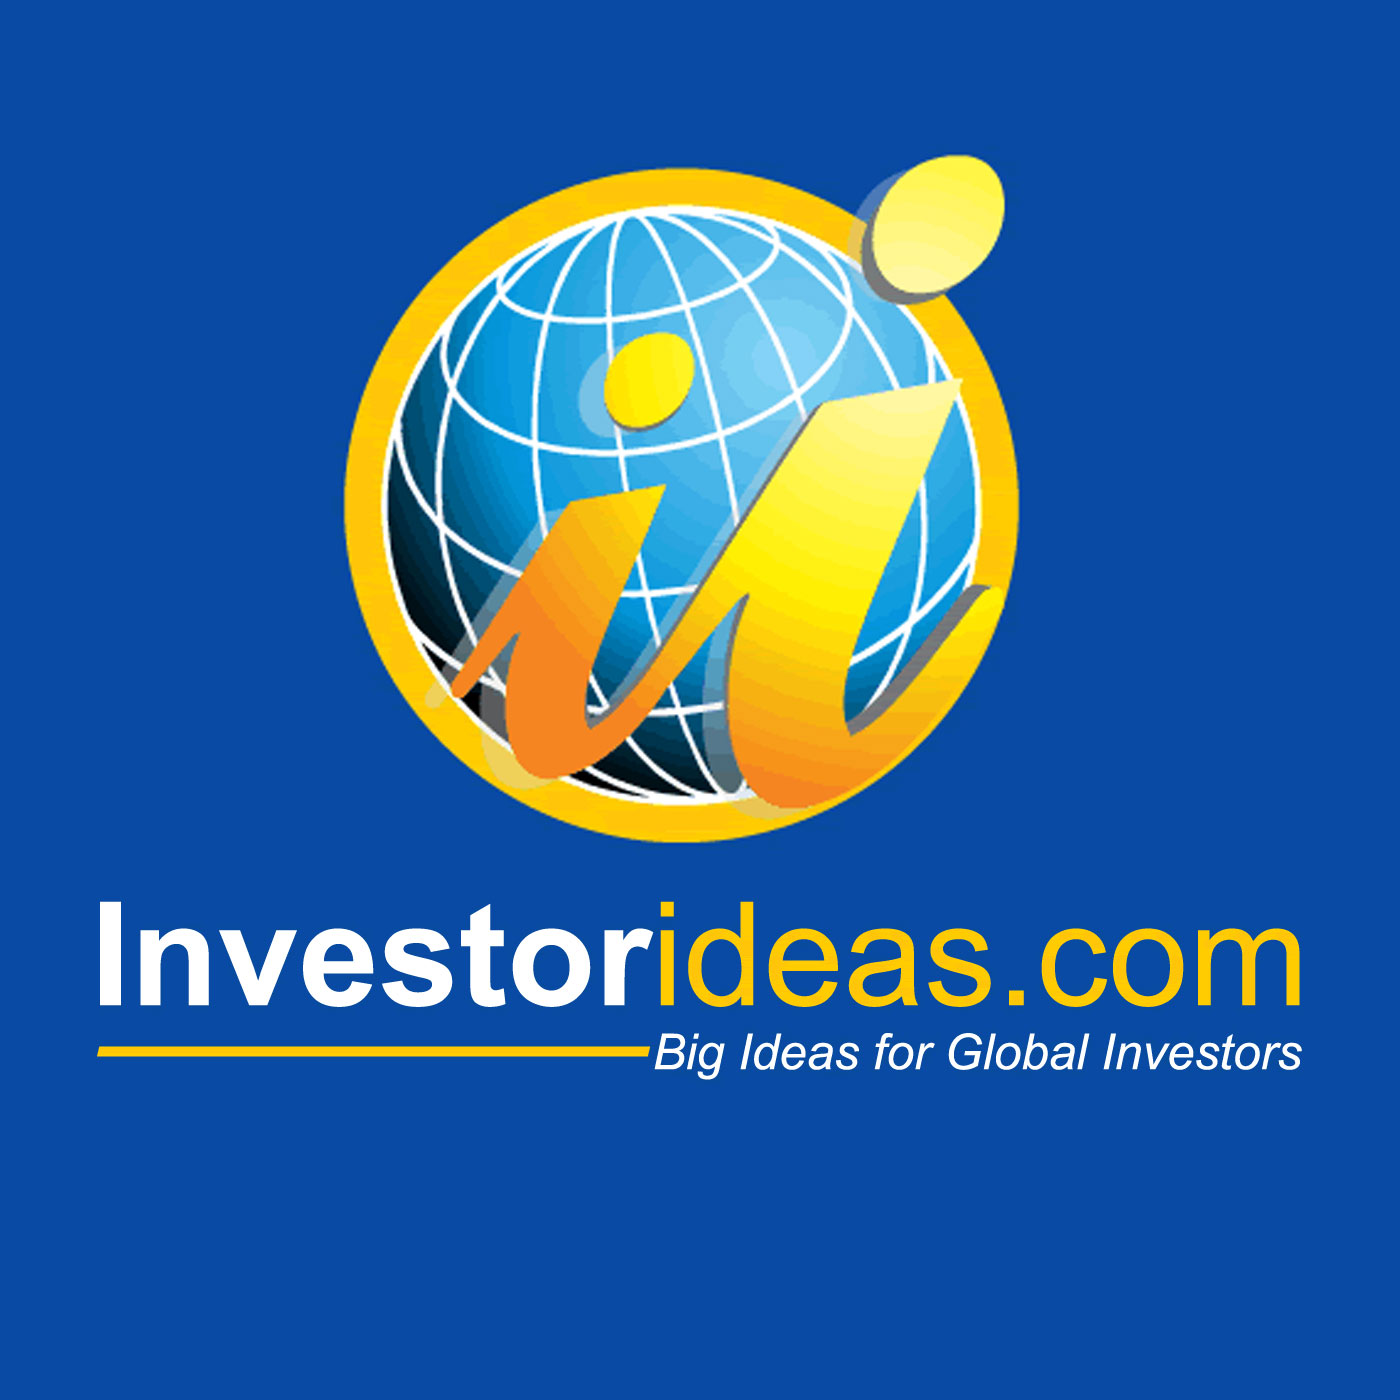 Investorideas.com Podcasts – Learn about investing and sector trends from leading experts and CEO's